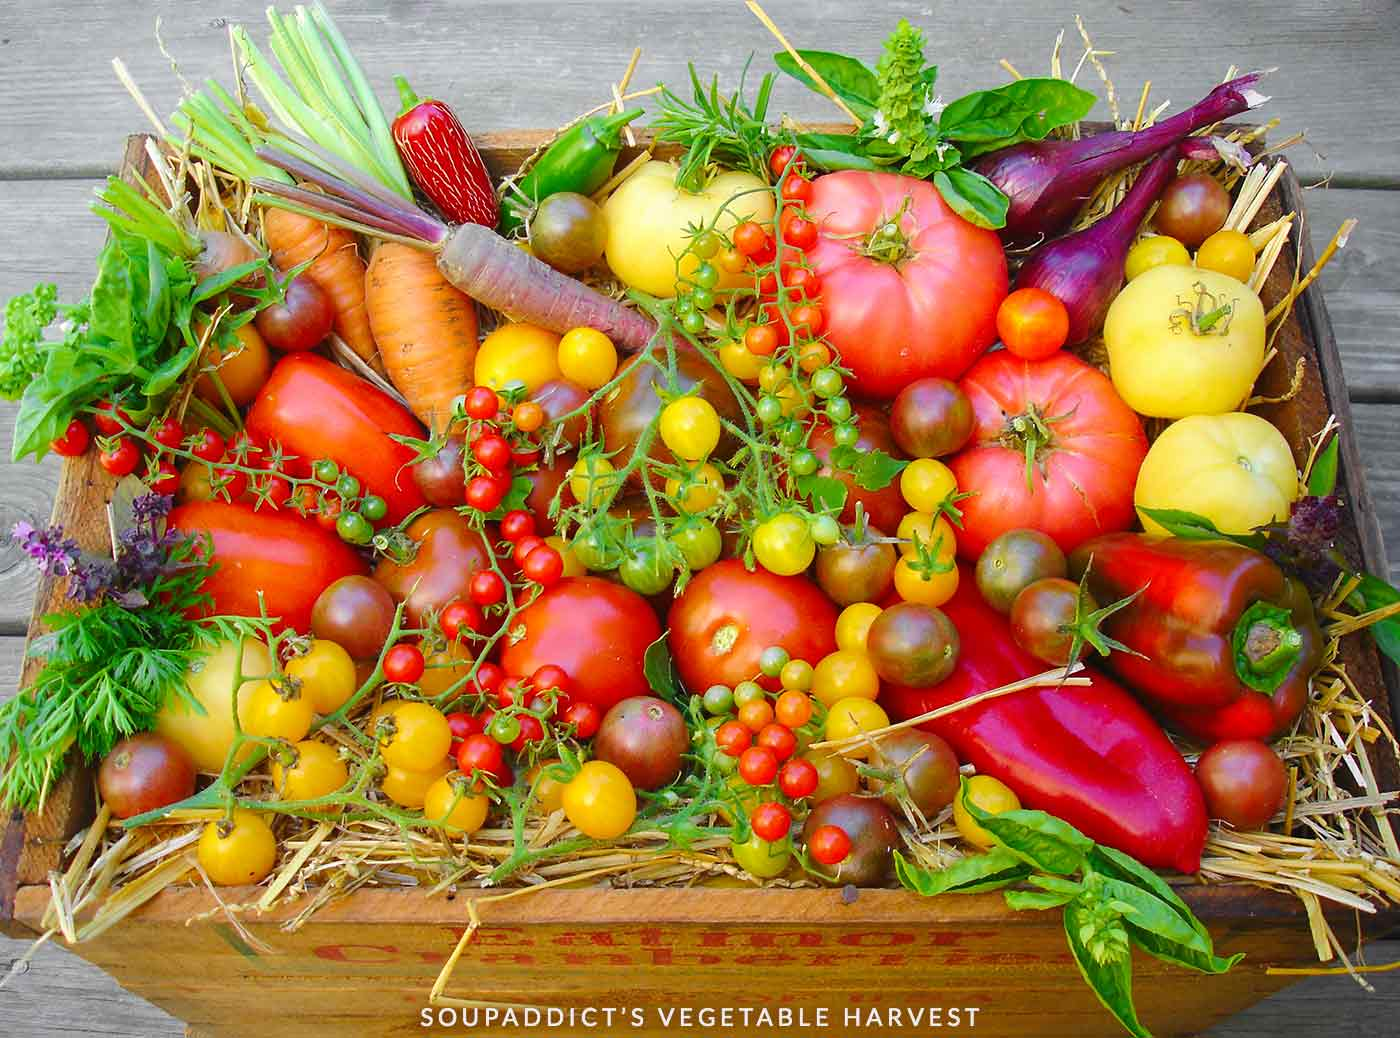 Old-fashioned wooden crate filled with vegetables harvested from thegarden